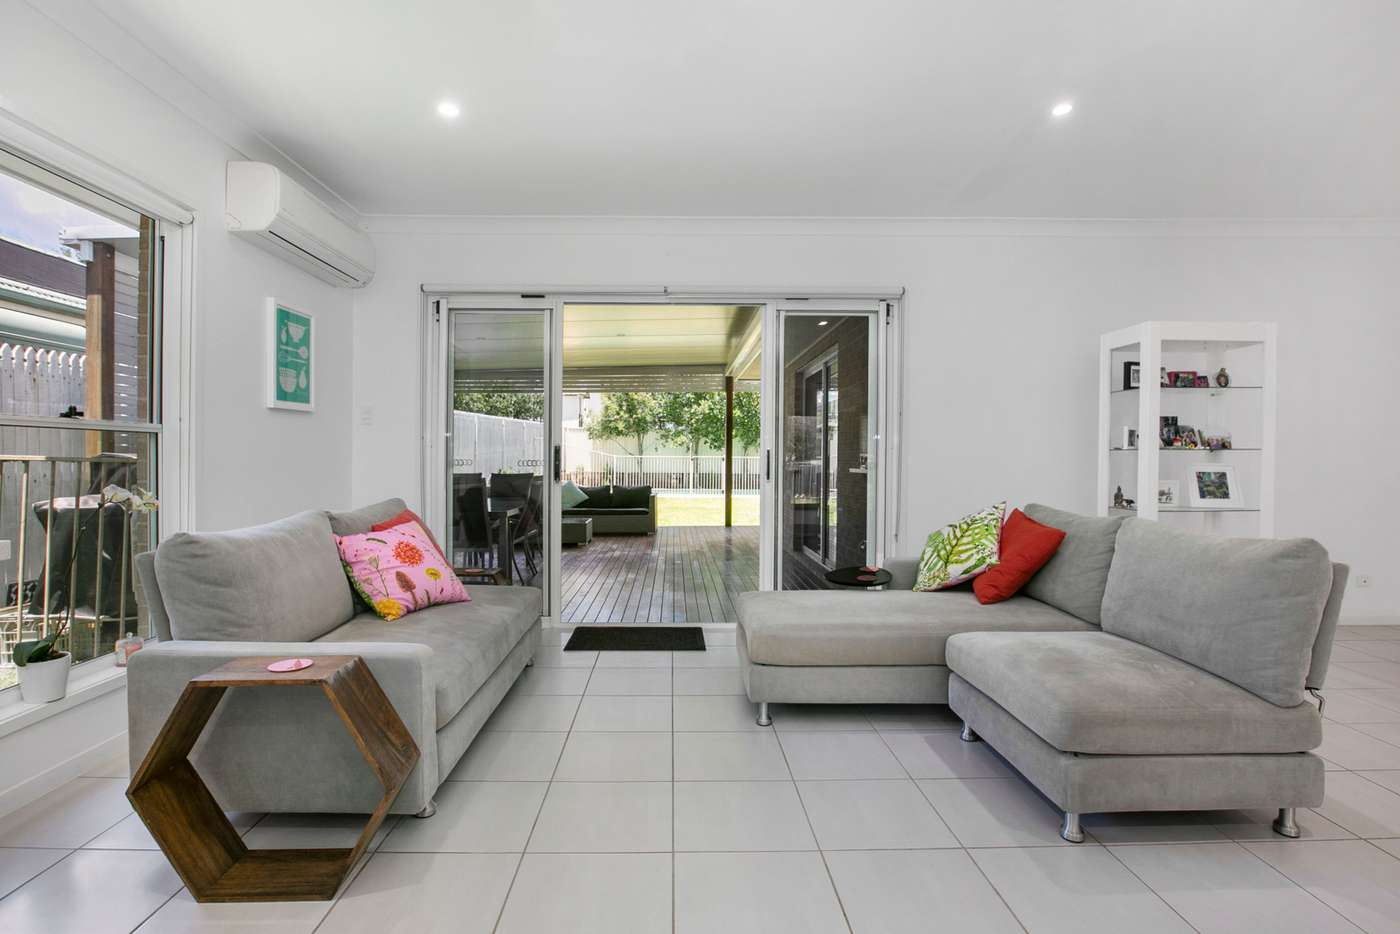 Fifth view of Homely house listing, 3 Tonita Court, Birkdale QLD 4159